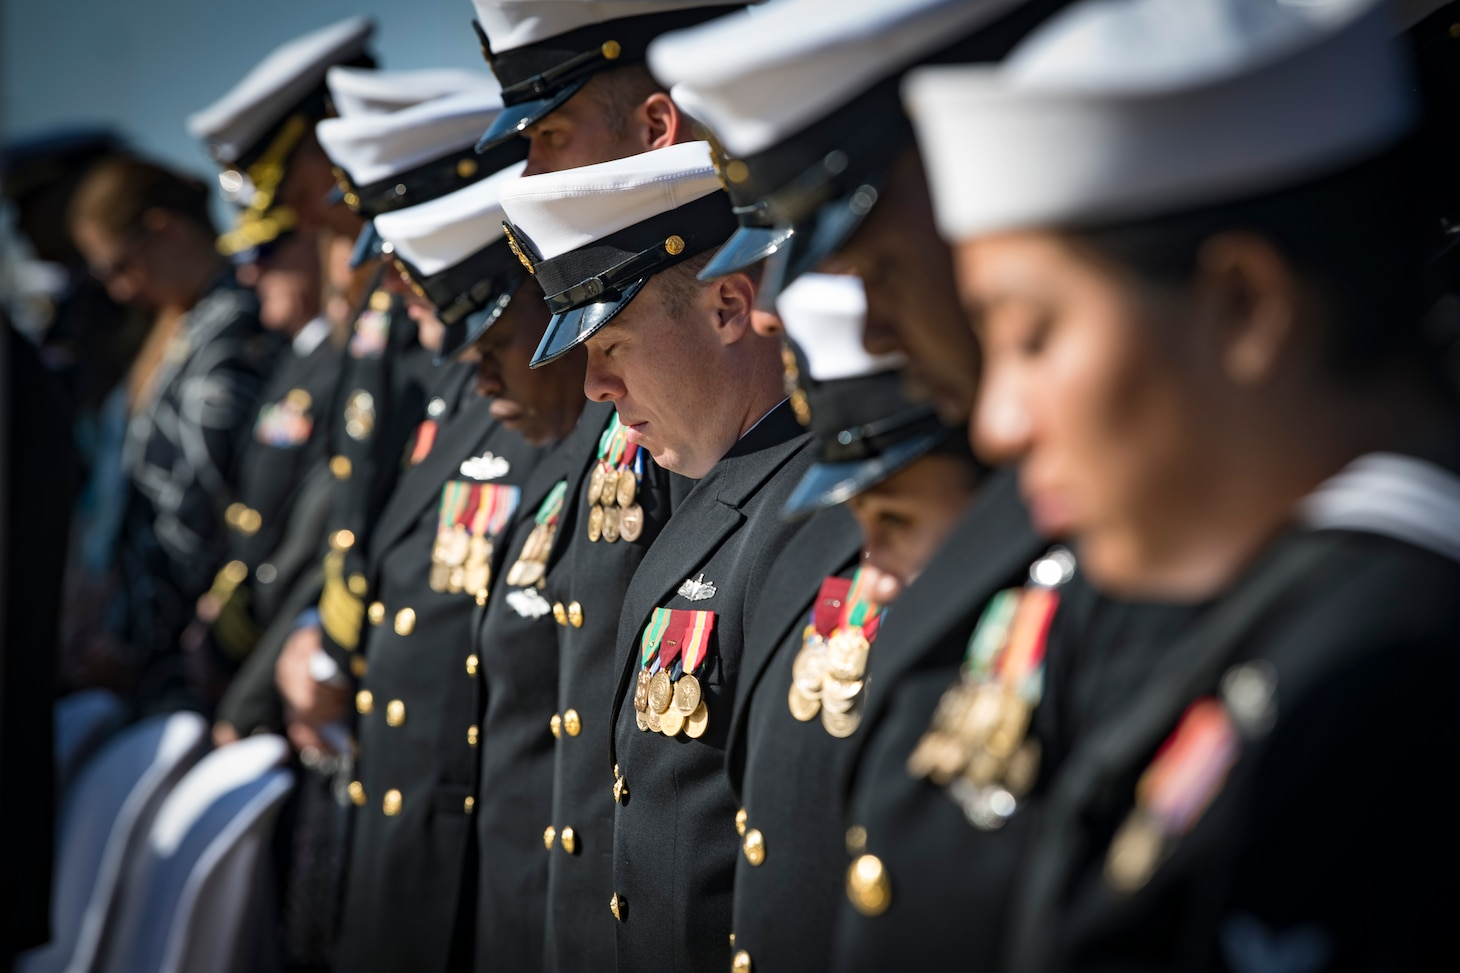 The official party from the Arleigh Burke-class guided-missile destroyer USS Donald Cook (DDG 75) salute as the color guard parades the colors during a change of command ceremony for the ship, May 3, 2019.